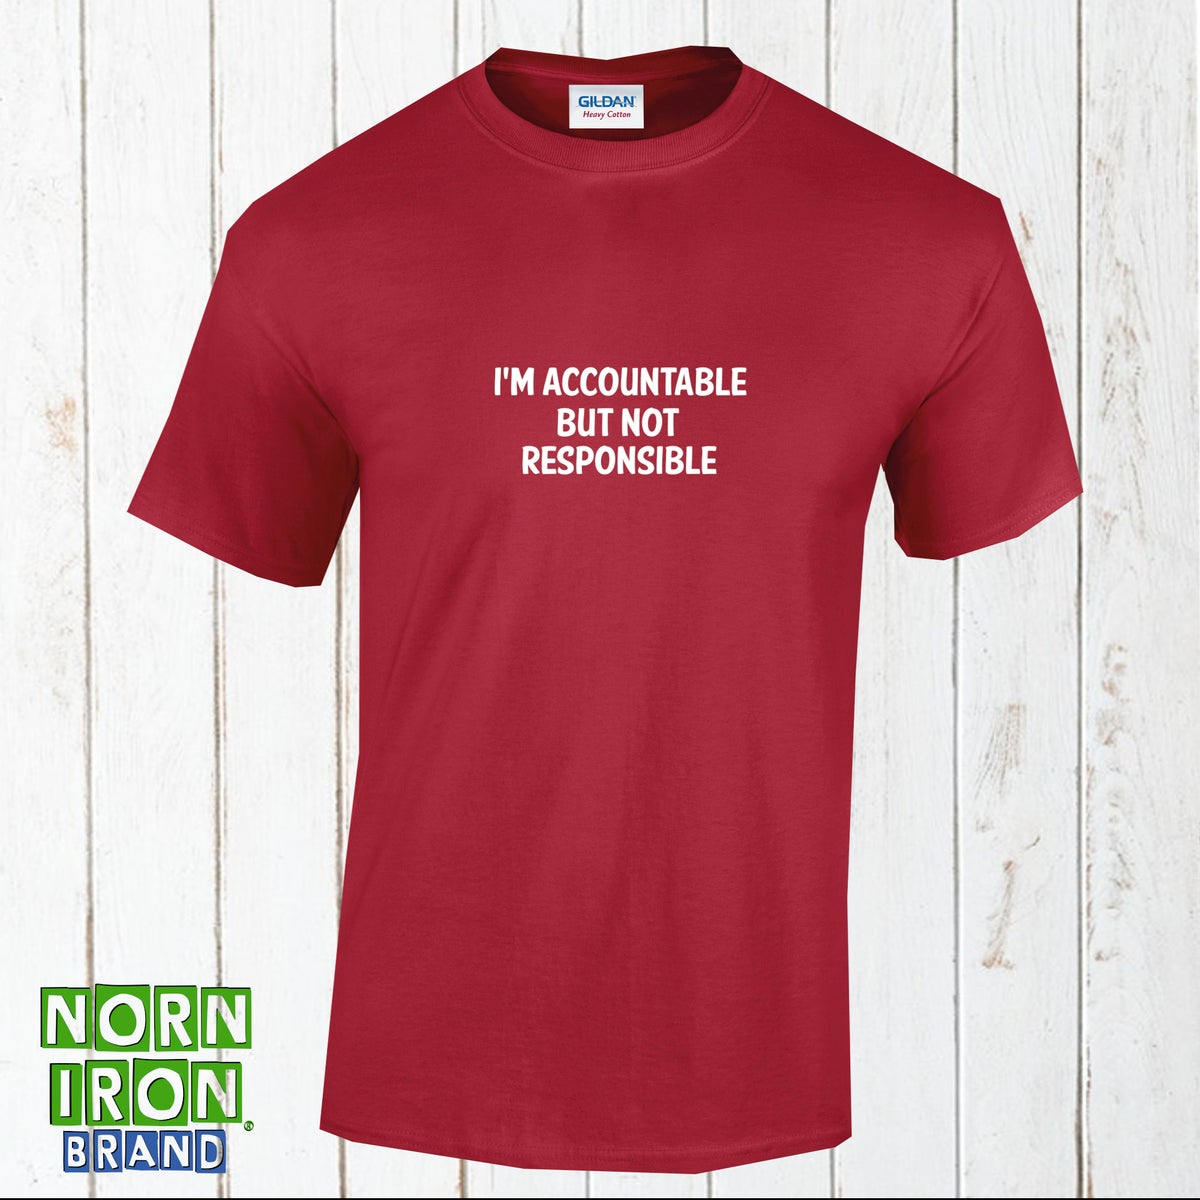 I'm accountable but not responsible T-Shirt